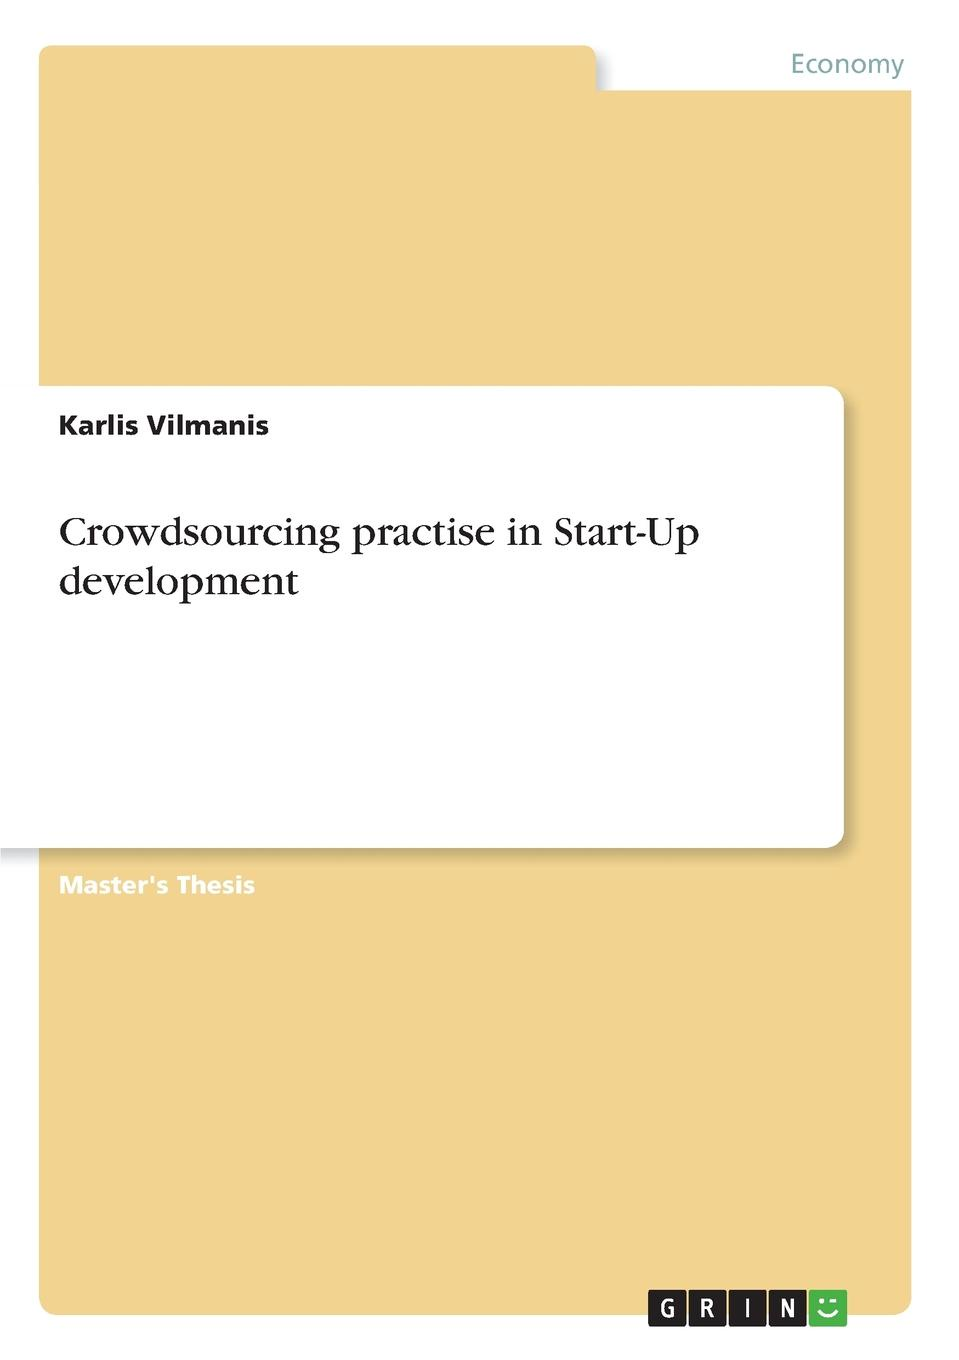 Karlis Vilmanis Crowdsourcing practise in Start-Up development cooking up a business